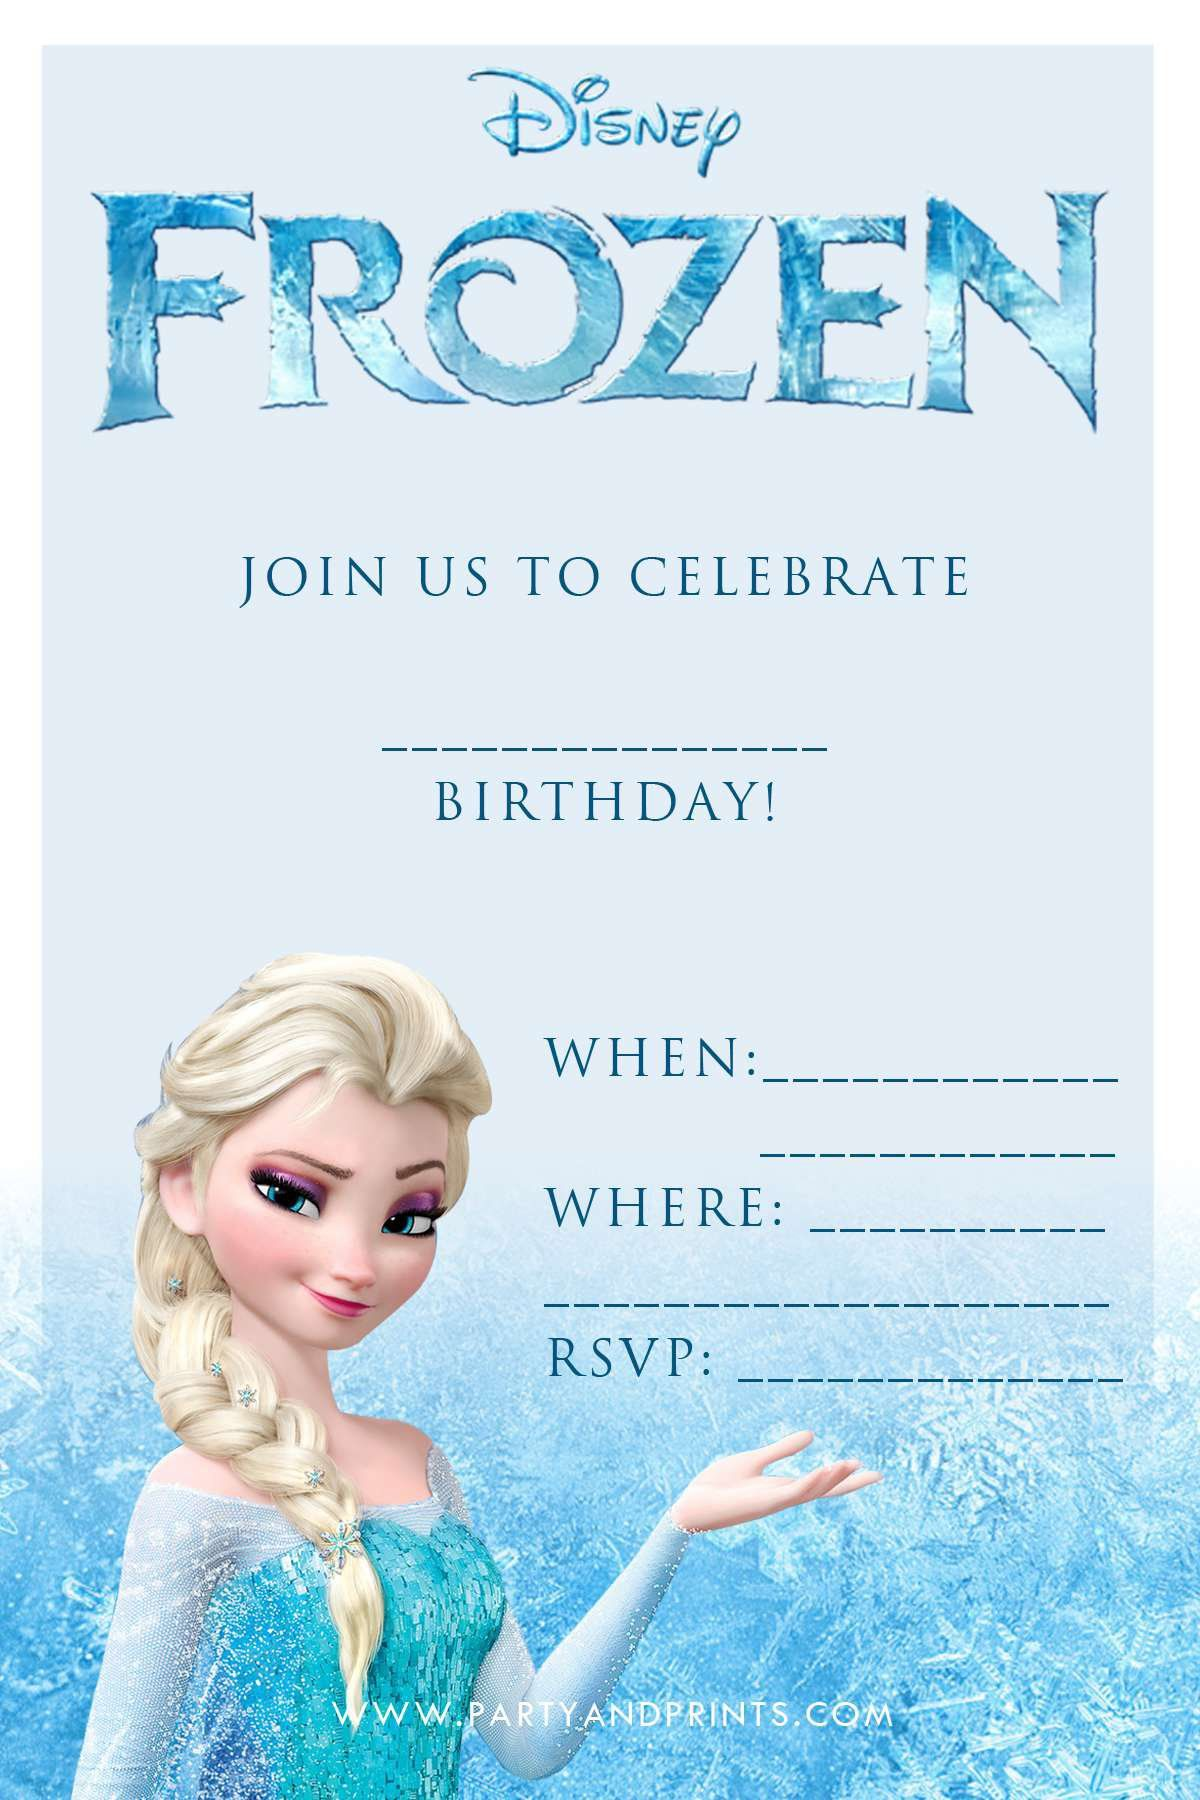 free online birthday invitations New Birthday Card princesss